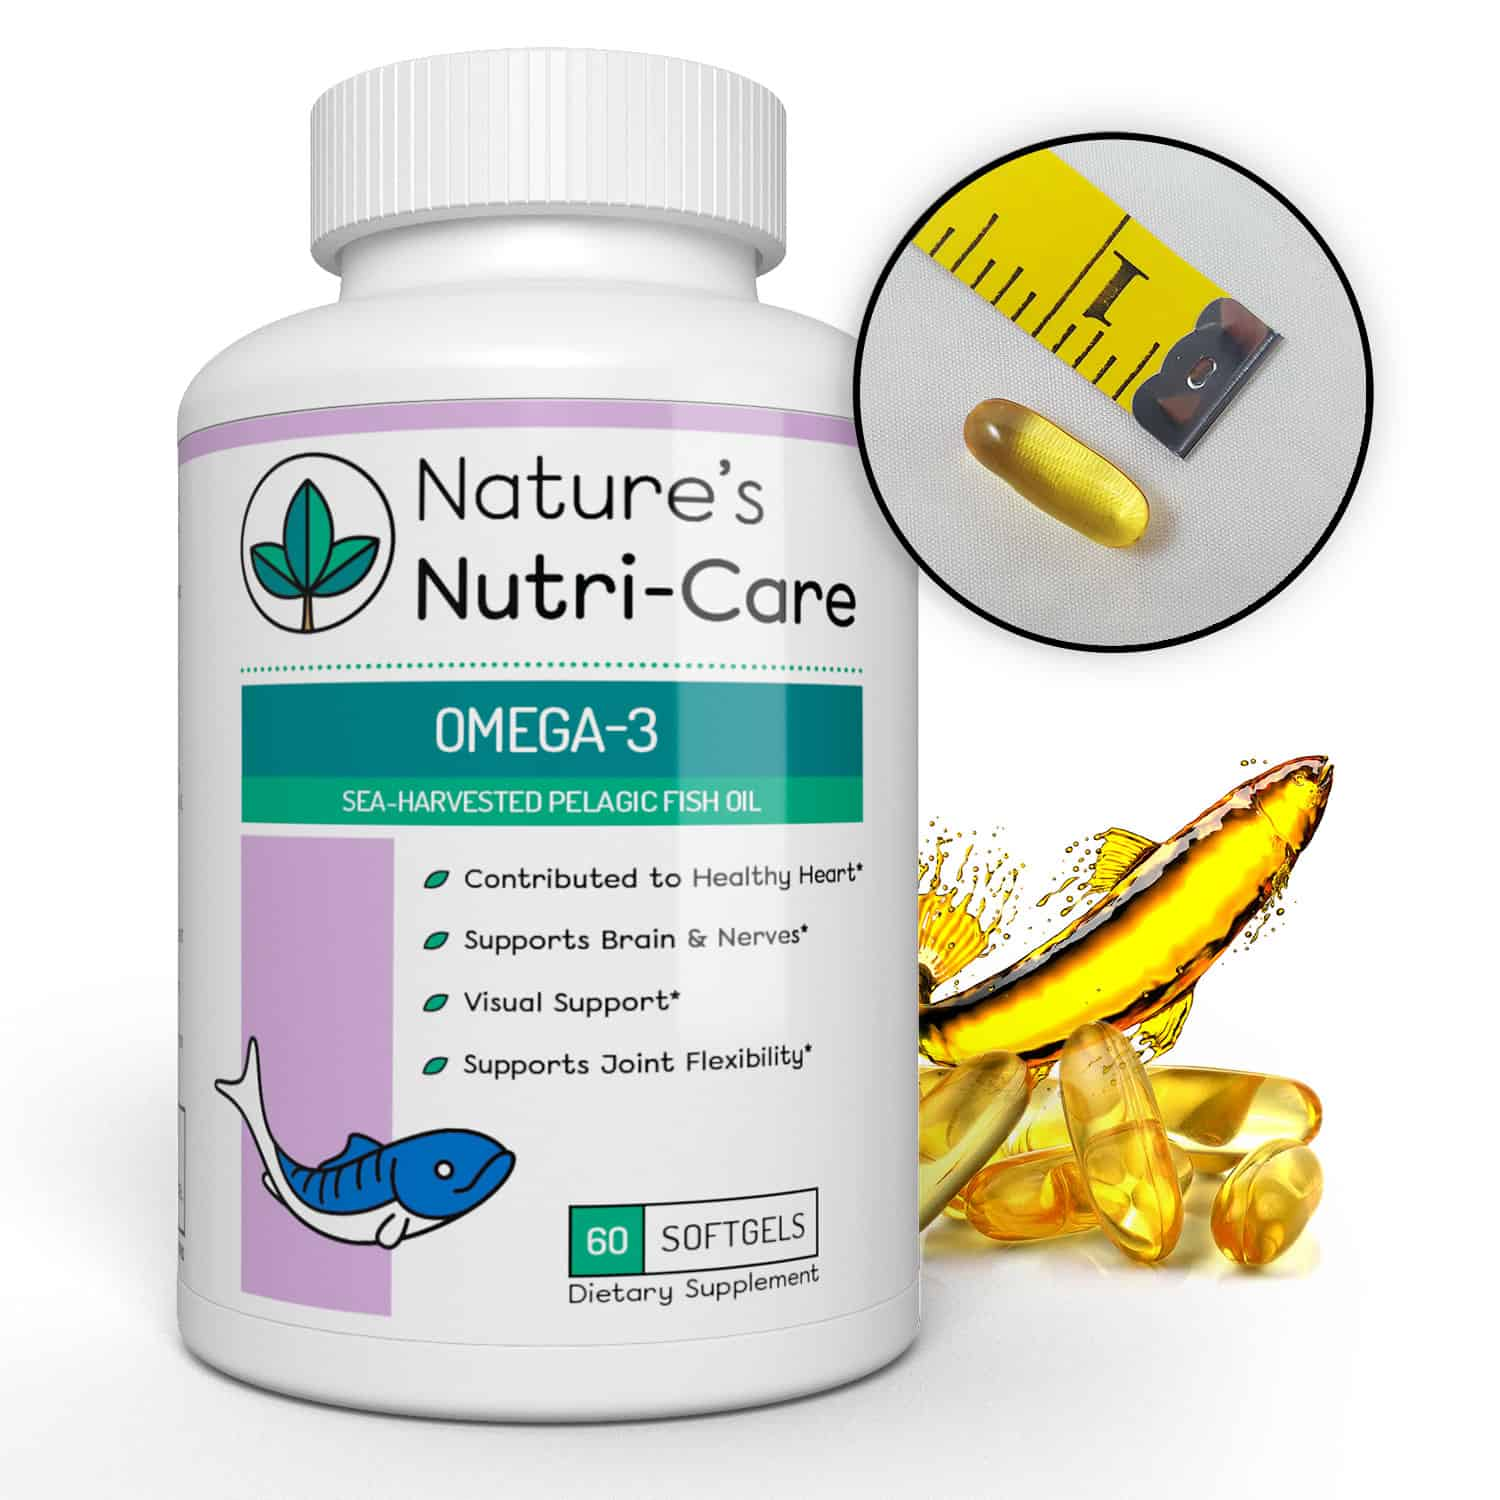 Nature's Nutri-Care Omega 3 Fish Oil - 1000 mg - 60 Softgels - Burpless Fish Oil - EPA and DHA - Sea Harvested Pelagic Fish Oil Supplement